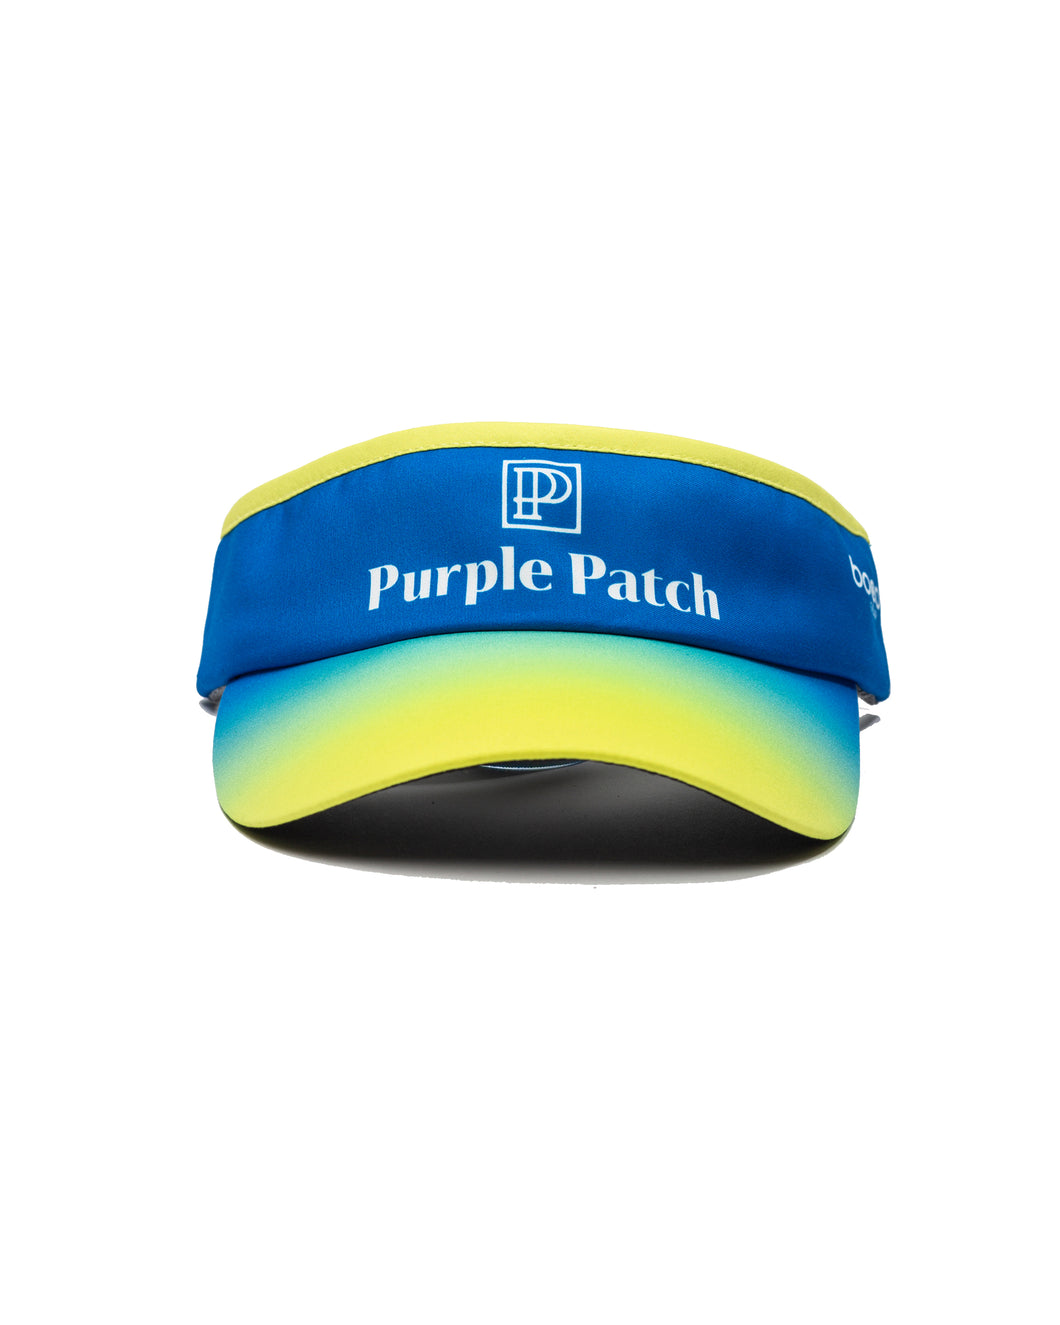 Boco Purple Patch Visor 2019